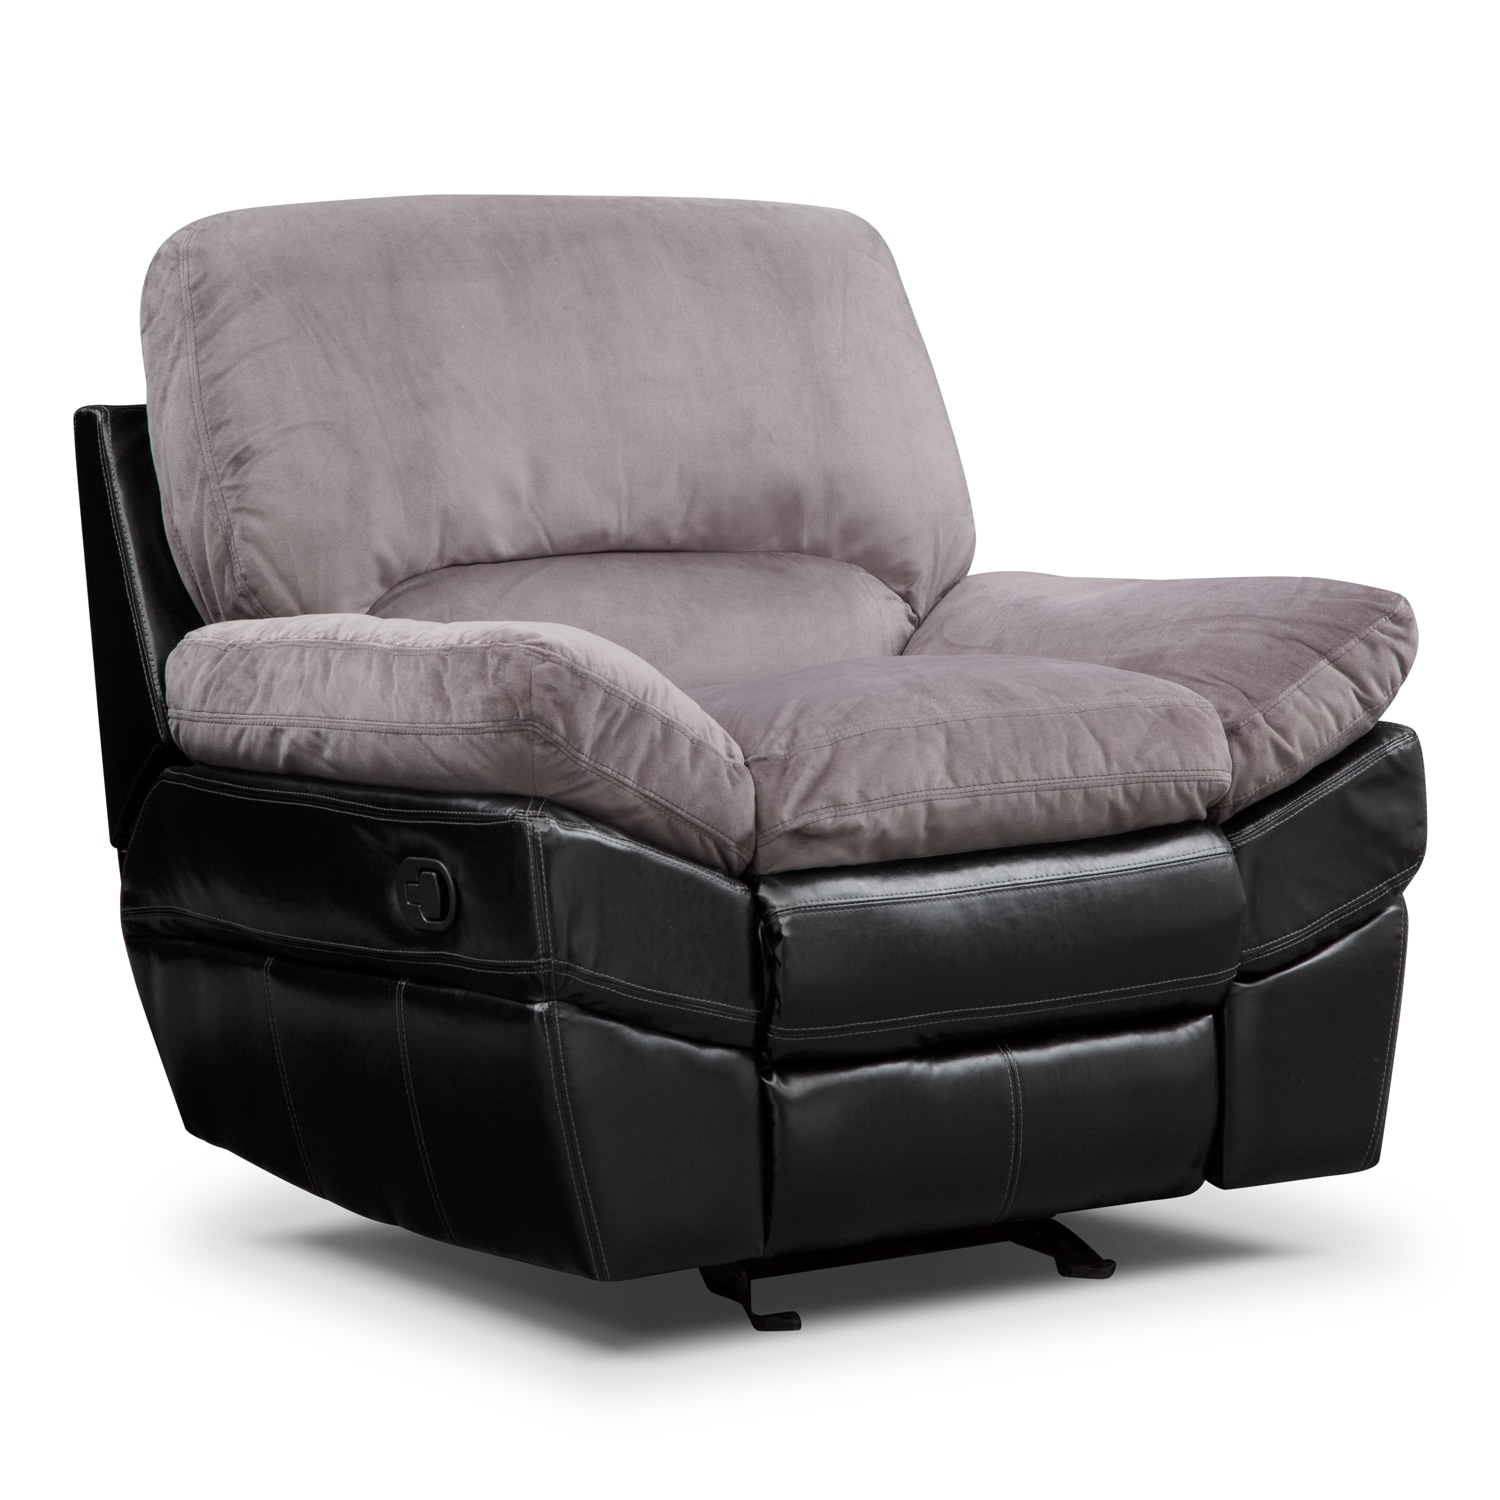 Chandler Gray Glider Recliner